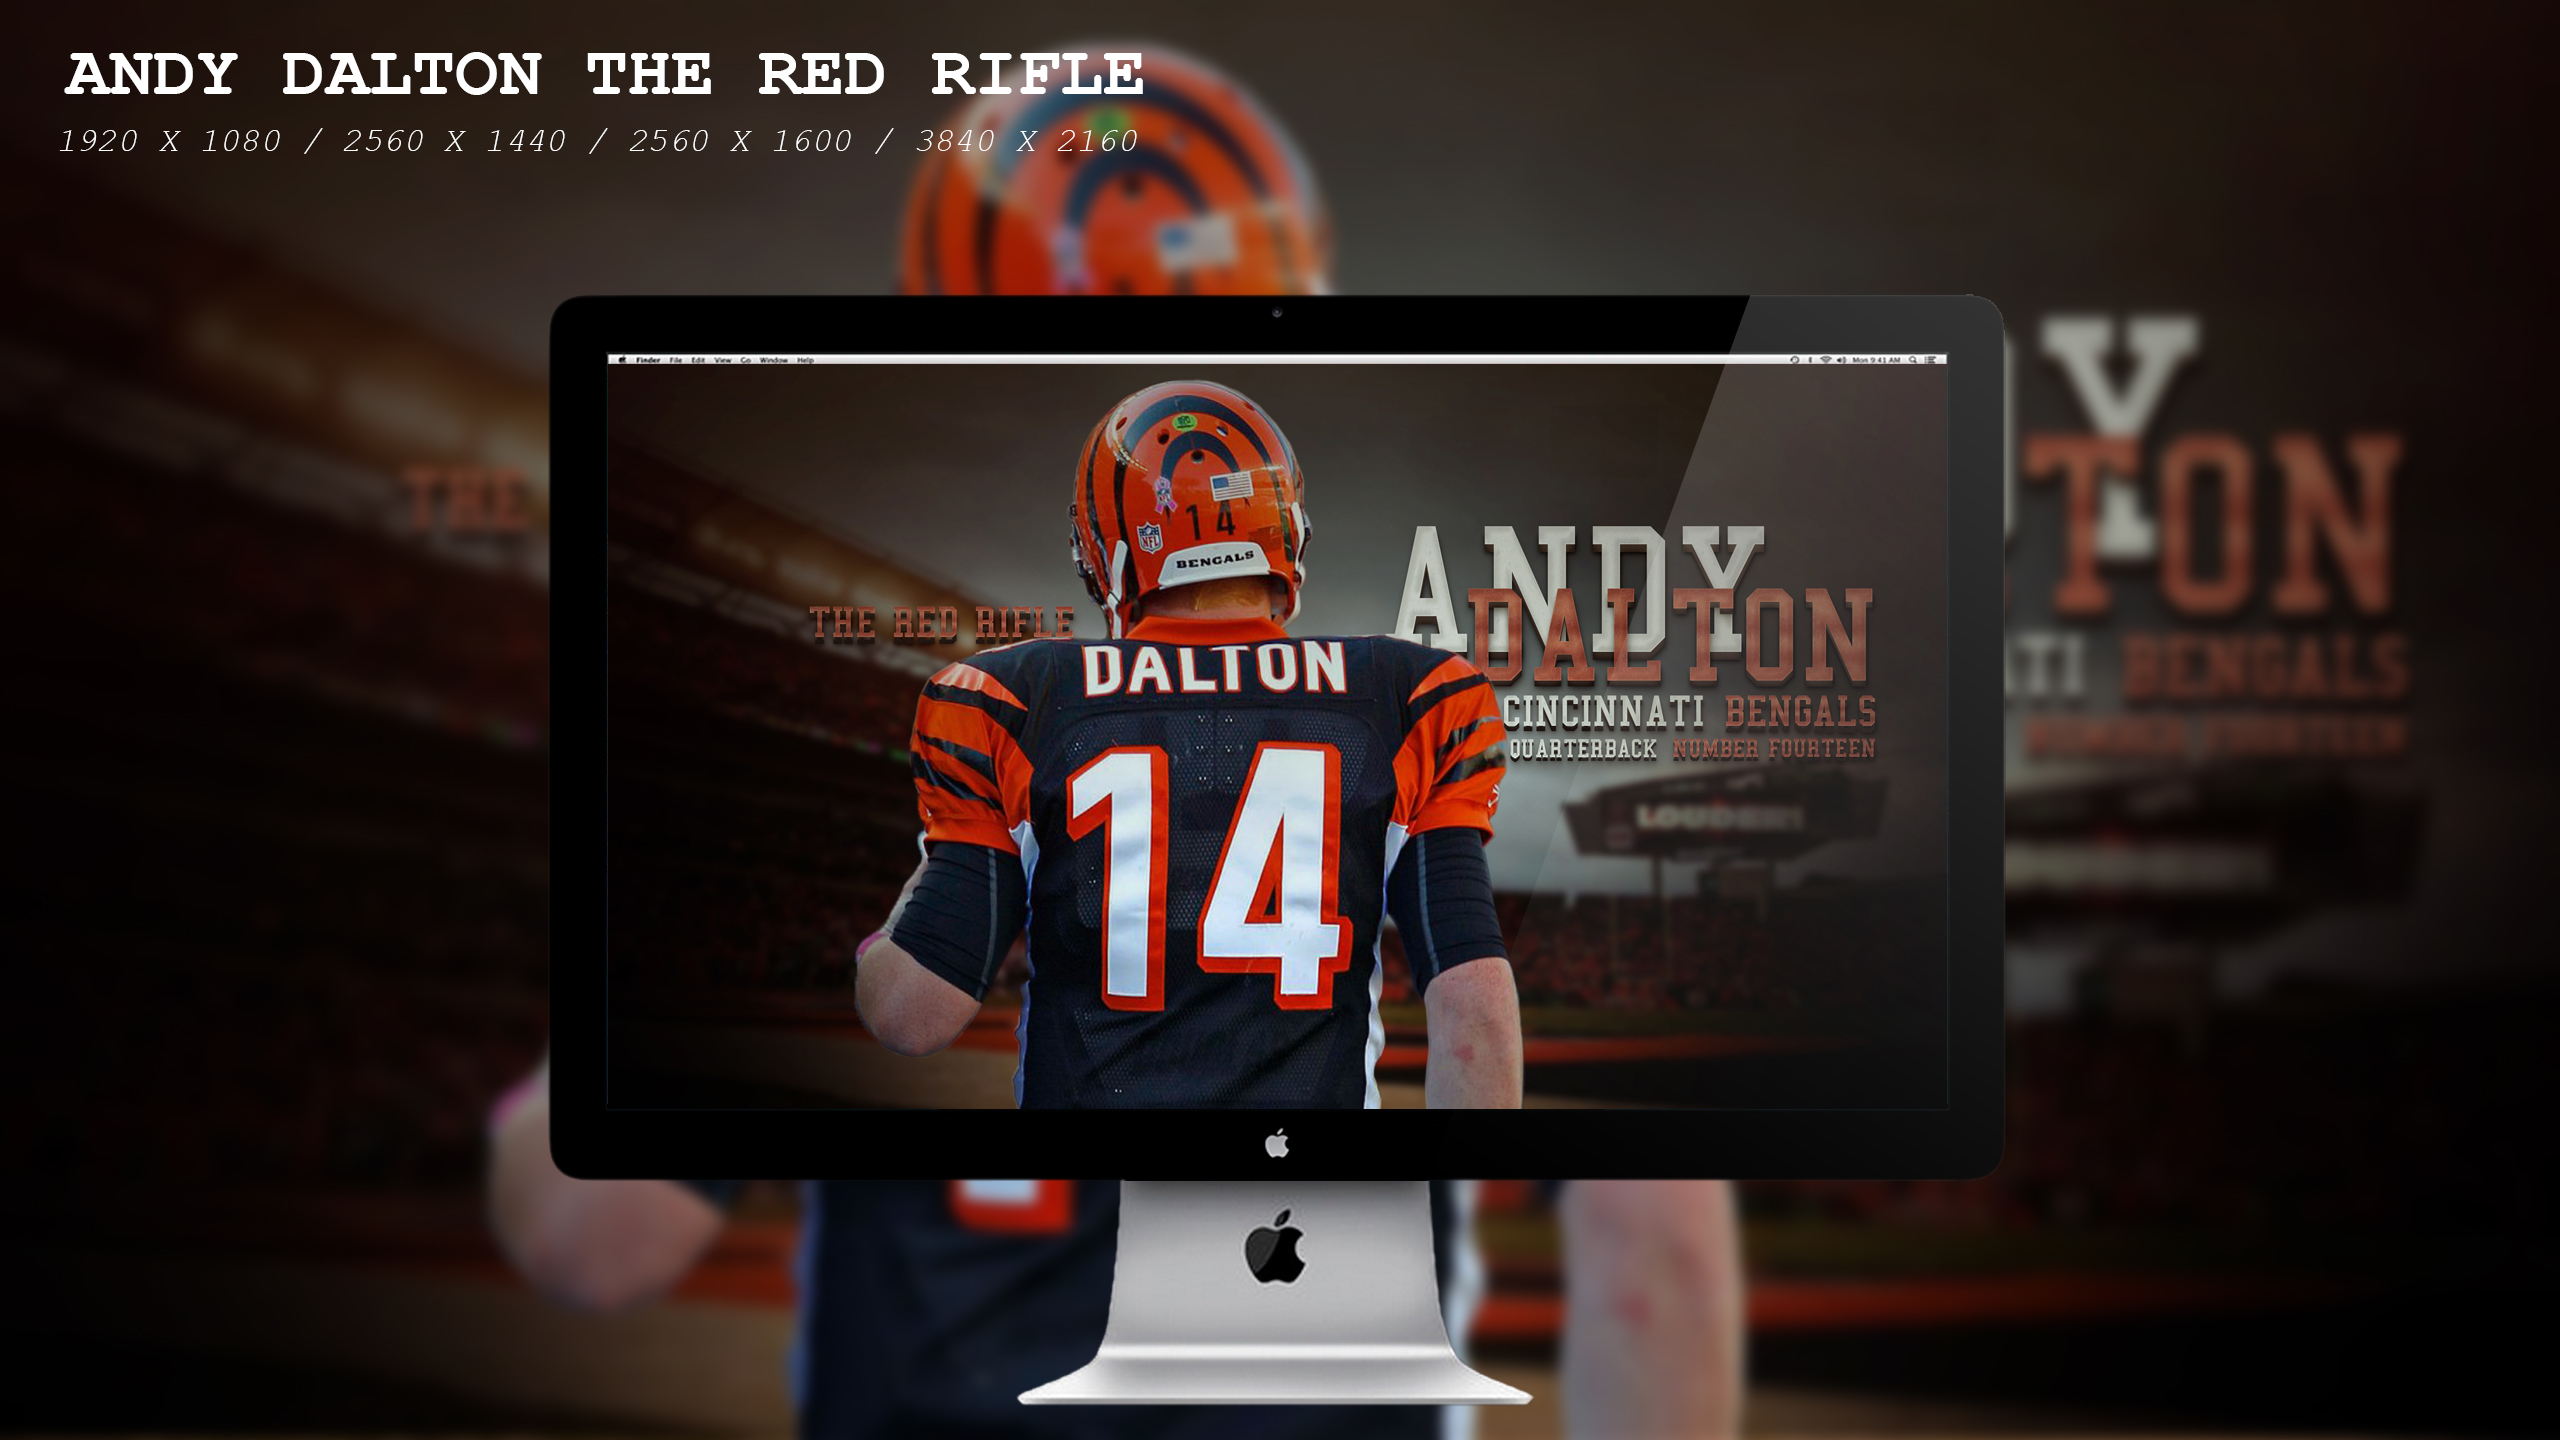 Andy Dalton The Red Rifle Wallpaper HD By BeAware8 On